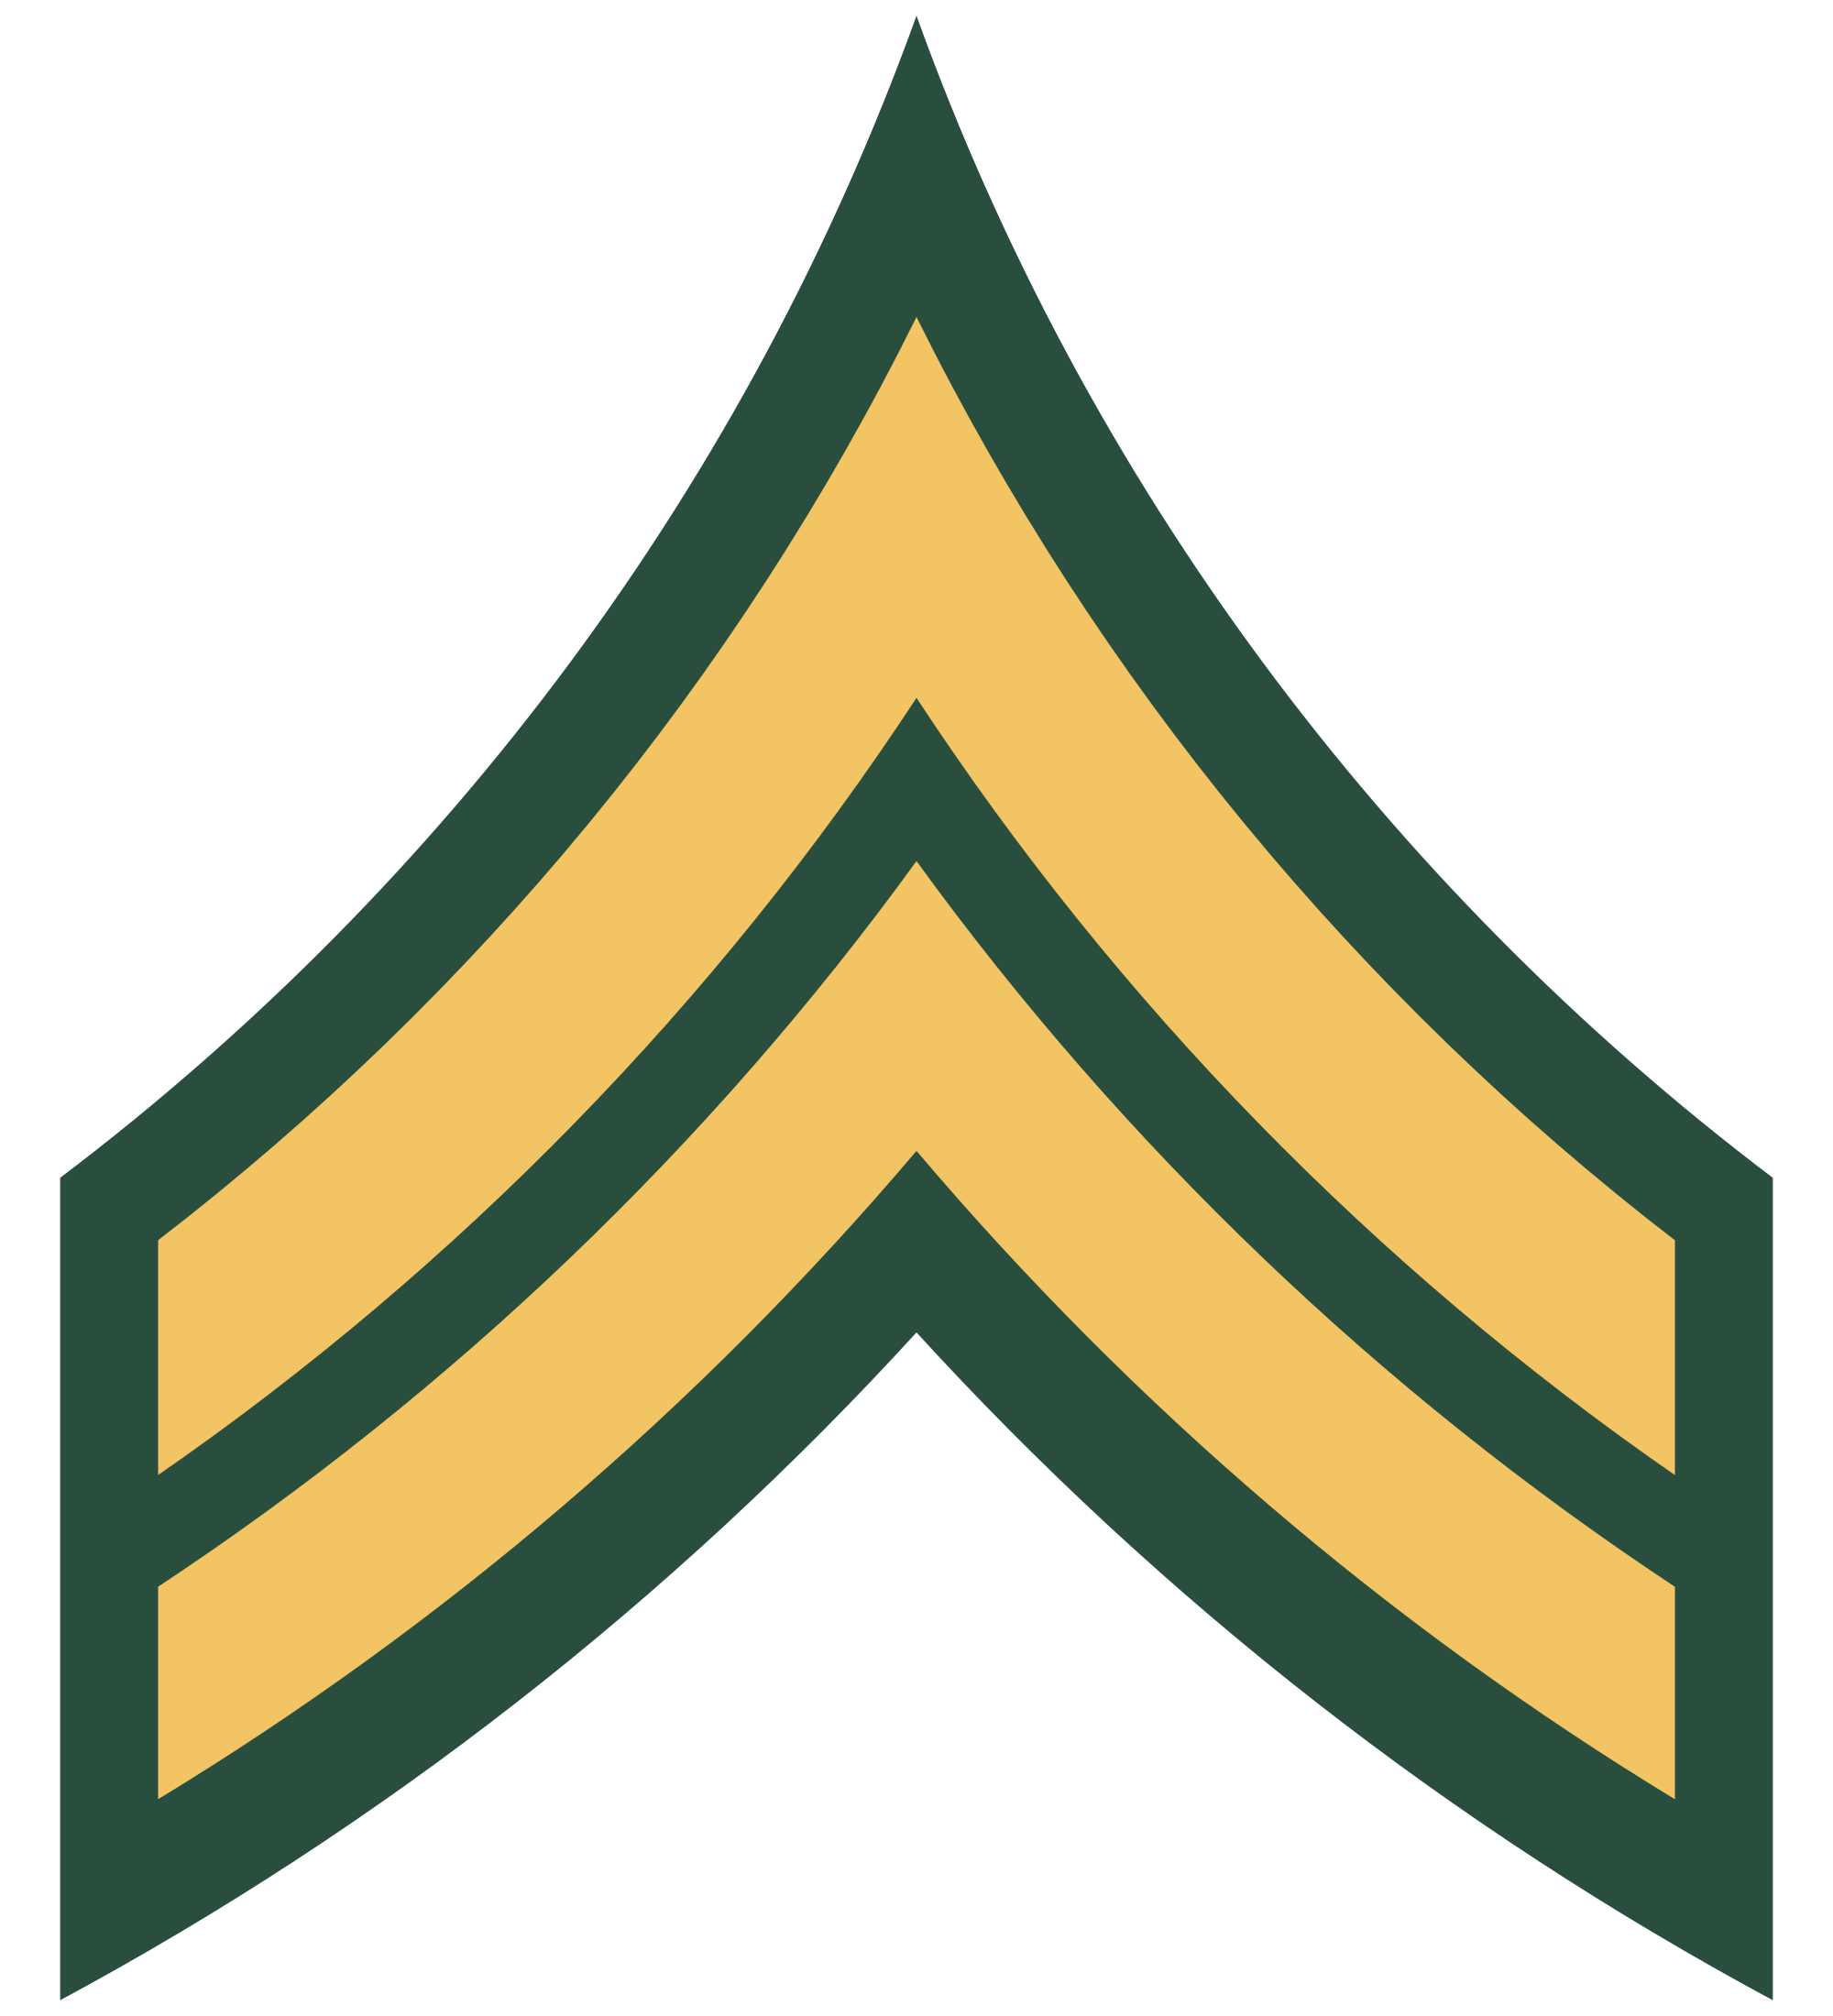 Chevrons surmounted when he